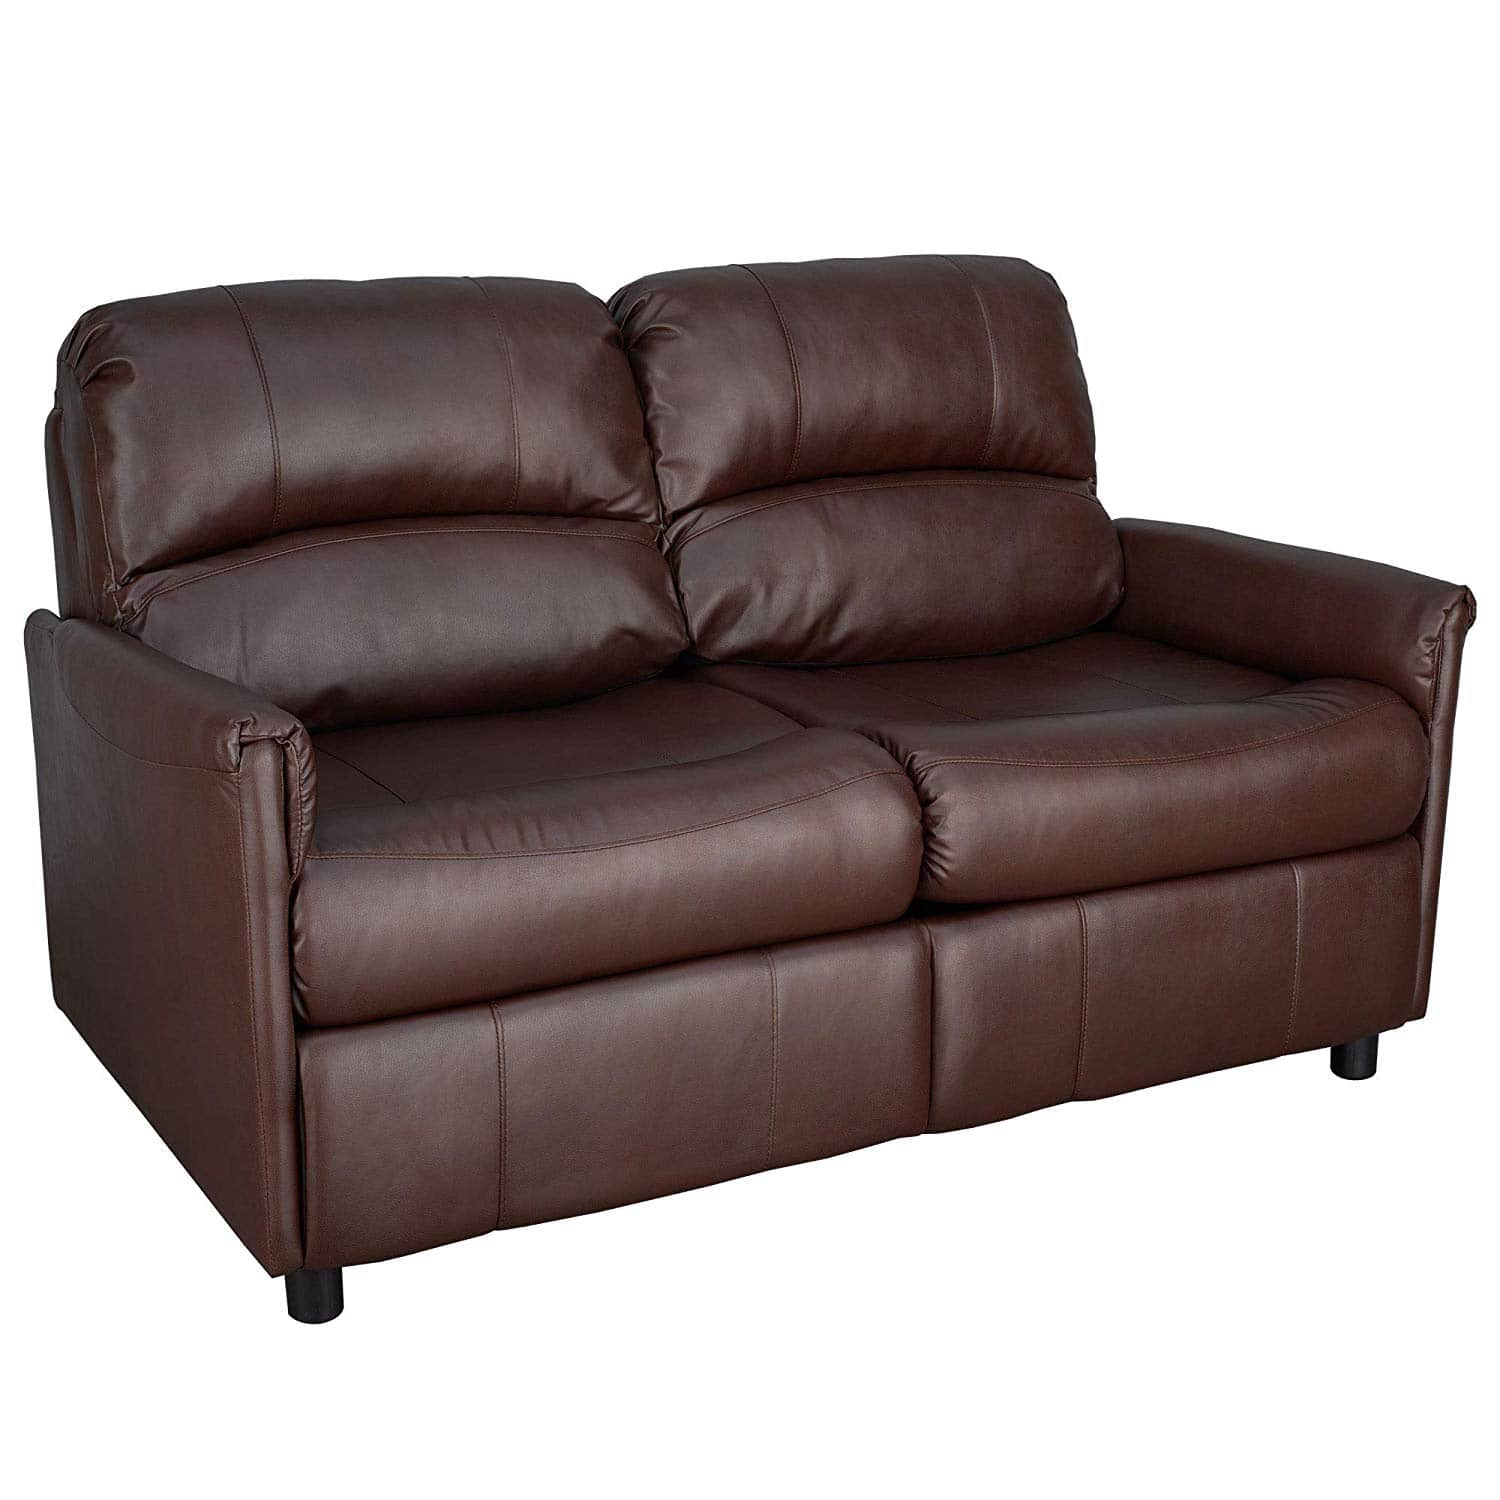 """60"""" RecPro Charles Collection brown pull out sofa bed, loveseat with memory foam mattress"""